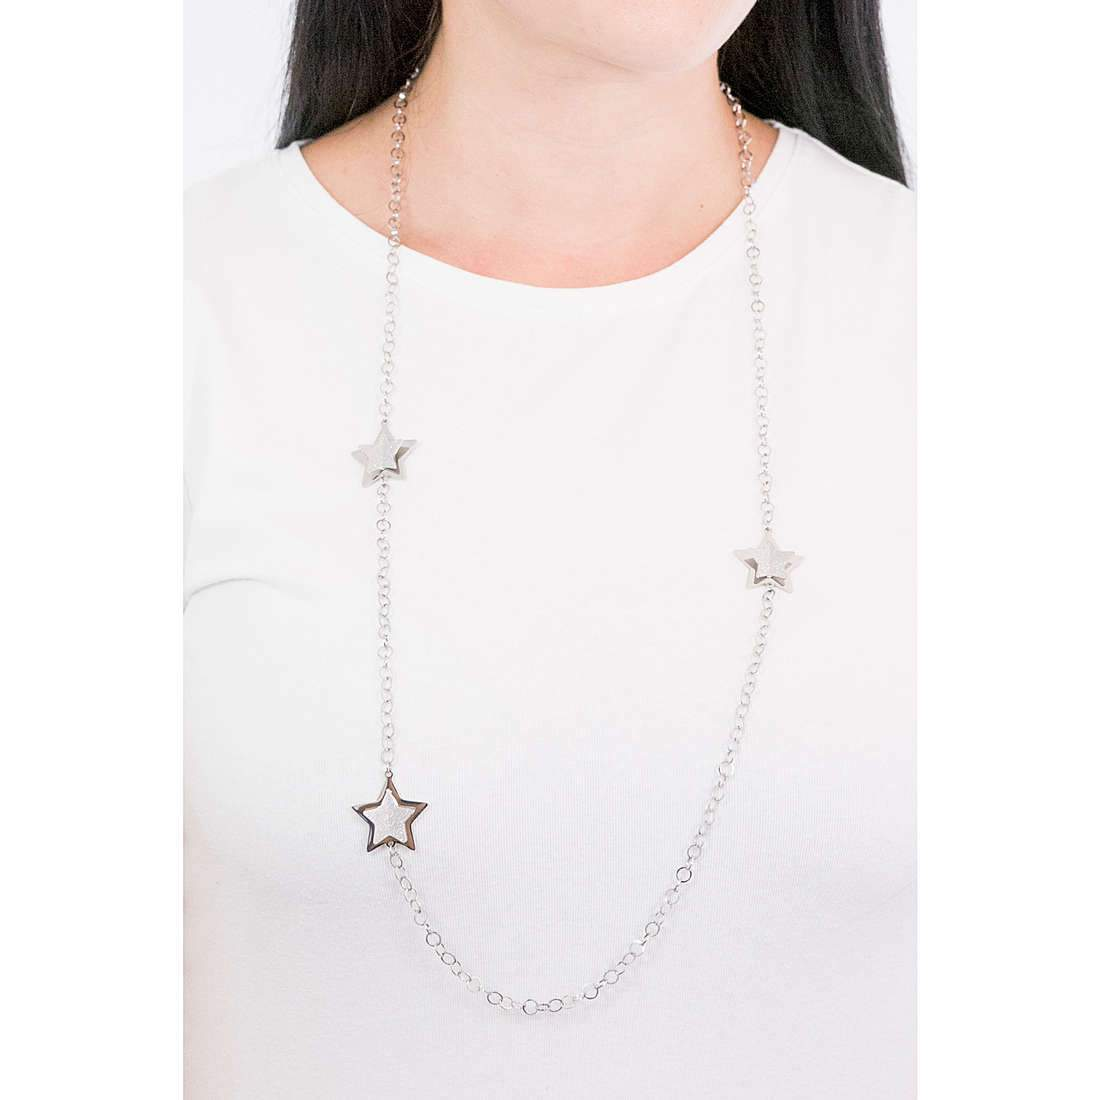 Luca Barra CK1437 Long Steel Necklace with Stars - Goldy Jewelry Store